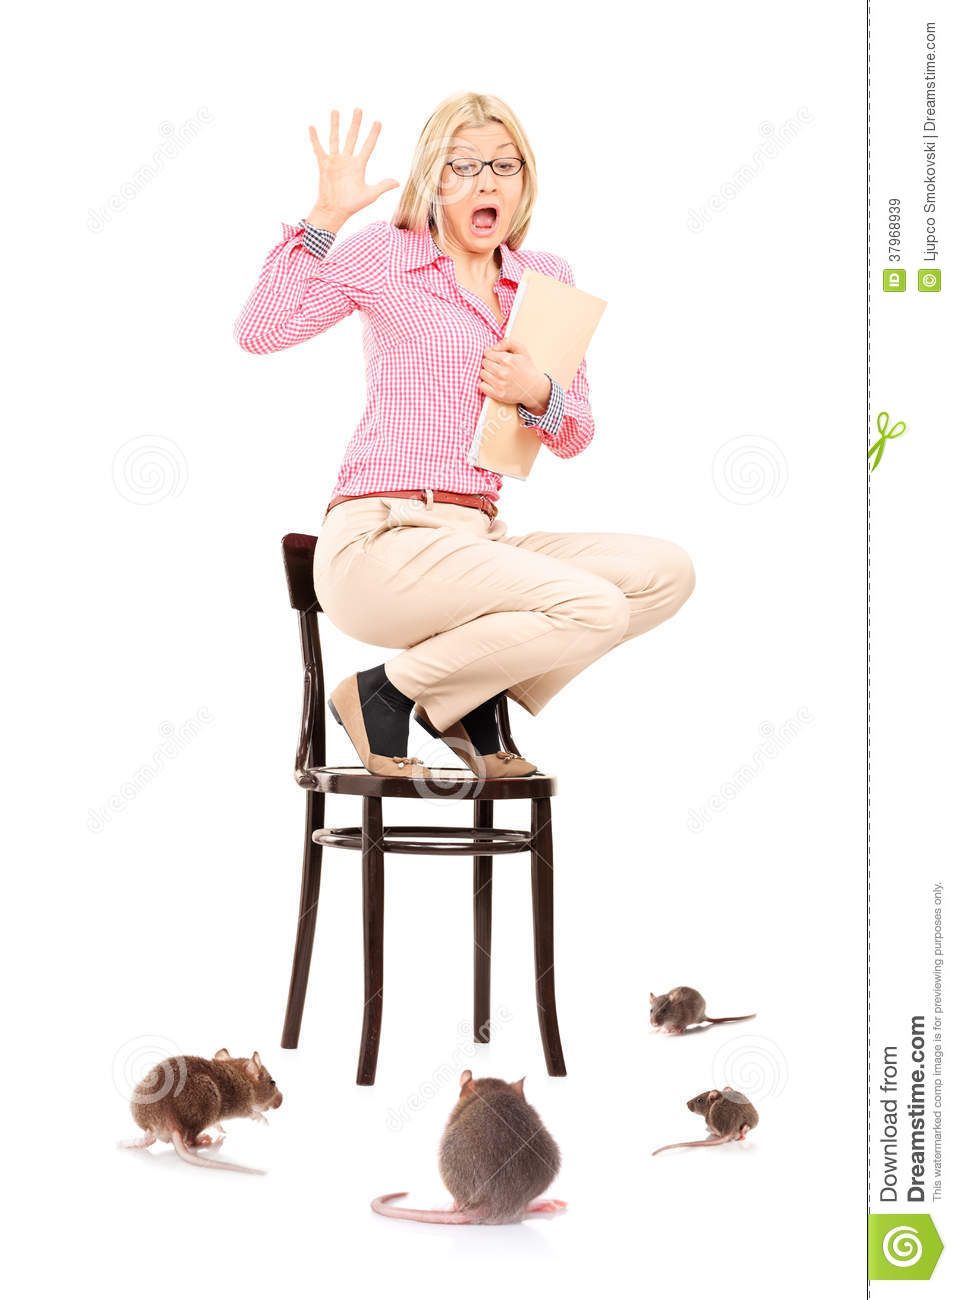 Scared woman standing on chair during a rat invasion